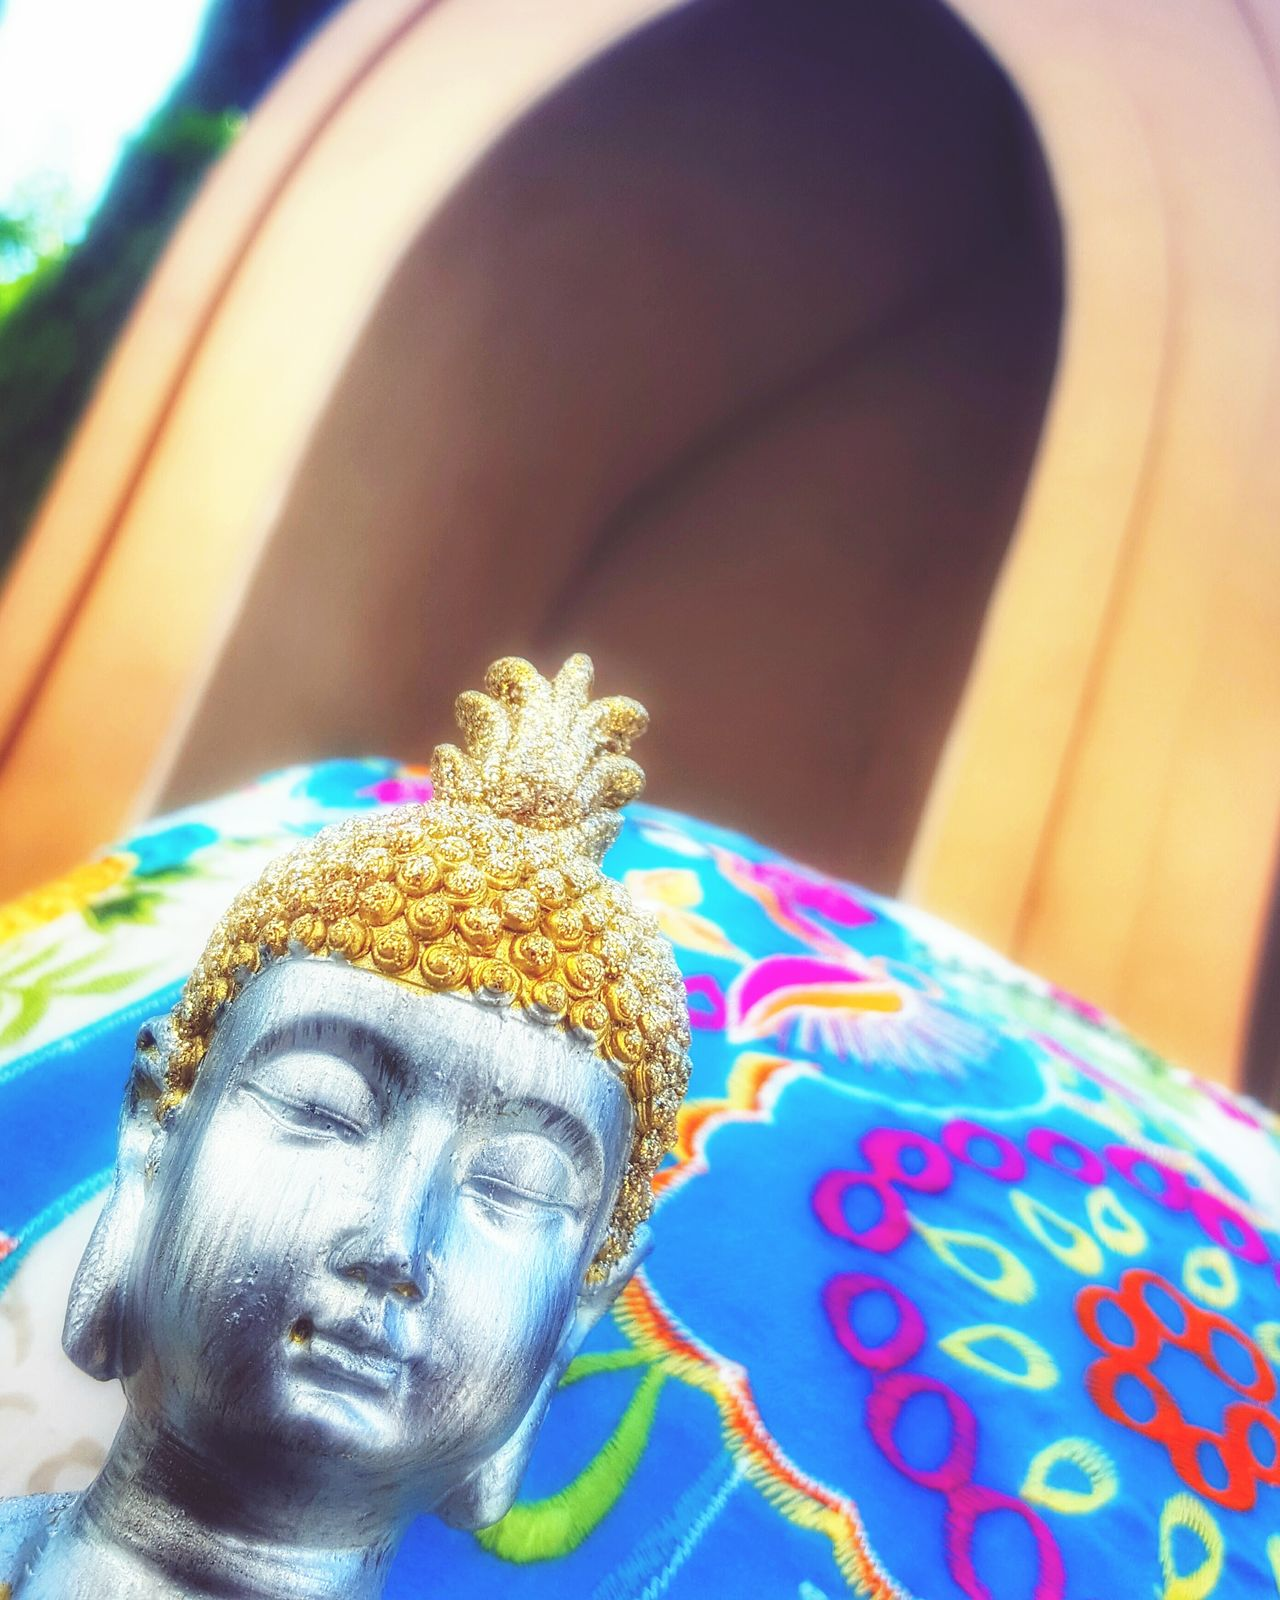 Finding Quiet Time Quiet Time Peaceful Tranquillity Lifestyles Buddha Sculpture Meditate Spirituality Inner Peace Abundance Quite Place Peaceful Place Photography Is My Escape From Reality! Attitude Eyeem Market Perspective From My Point Of View EyeEm Eyeemphotography Eye4photograghy ForTheLoveOfPhotography